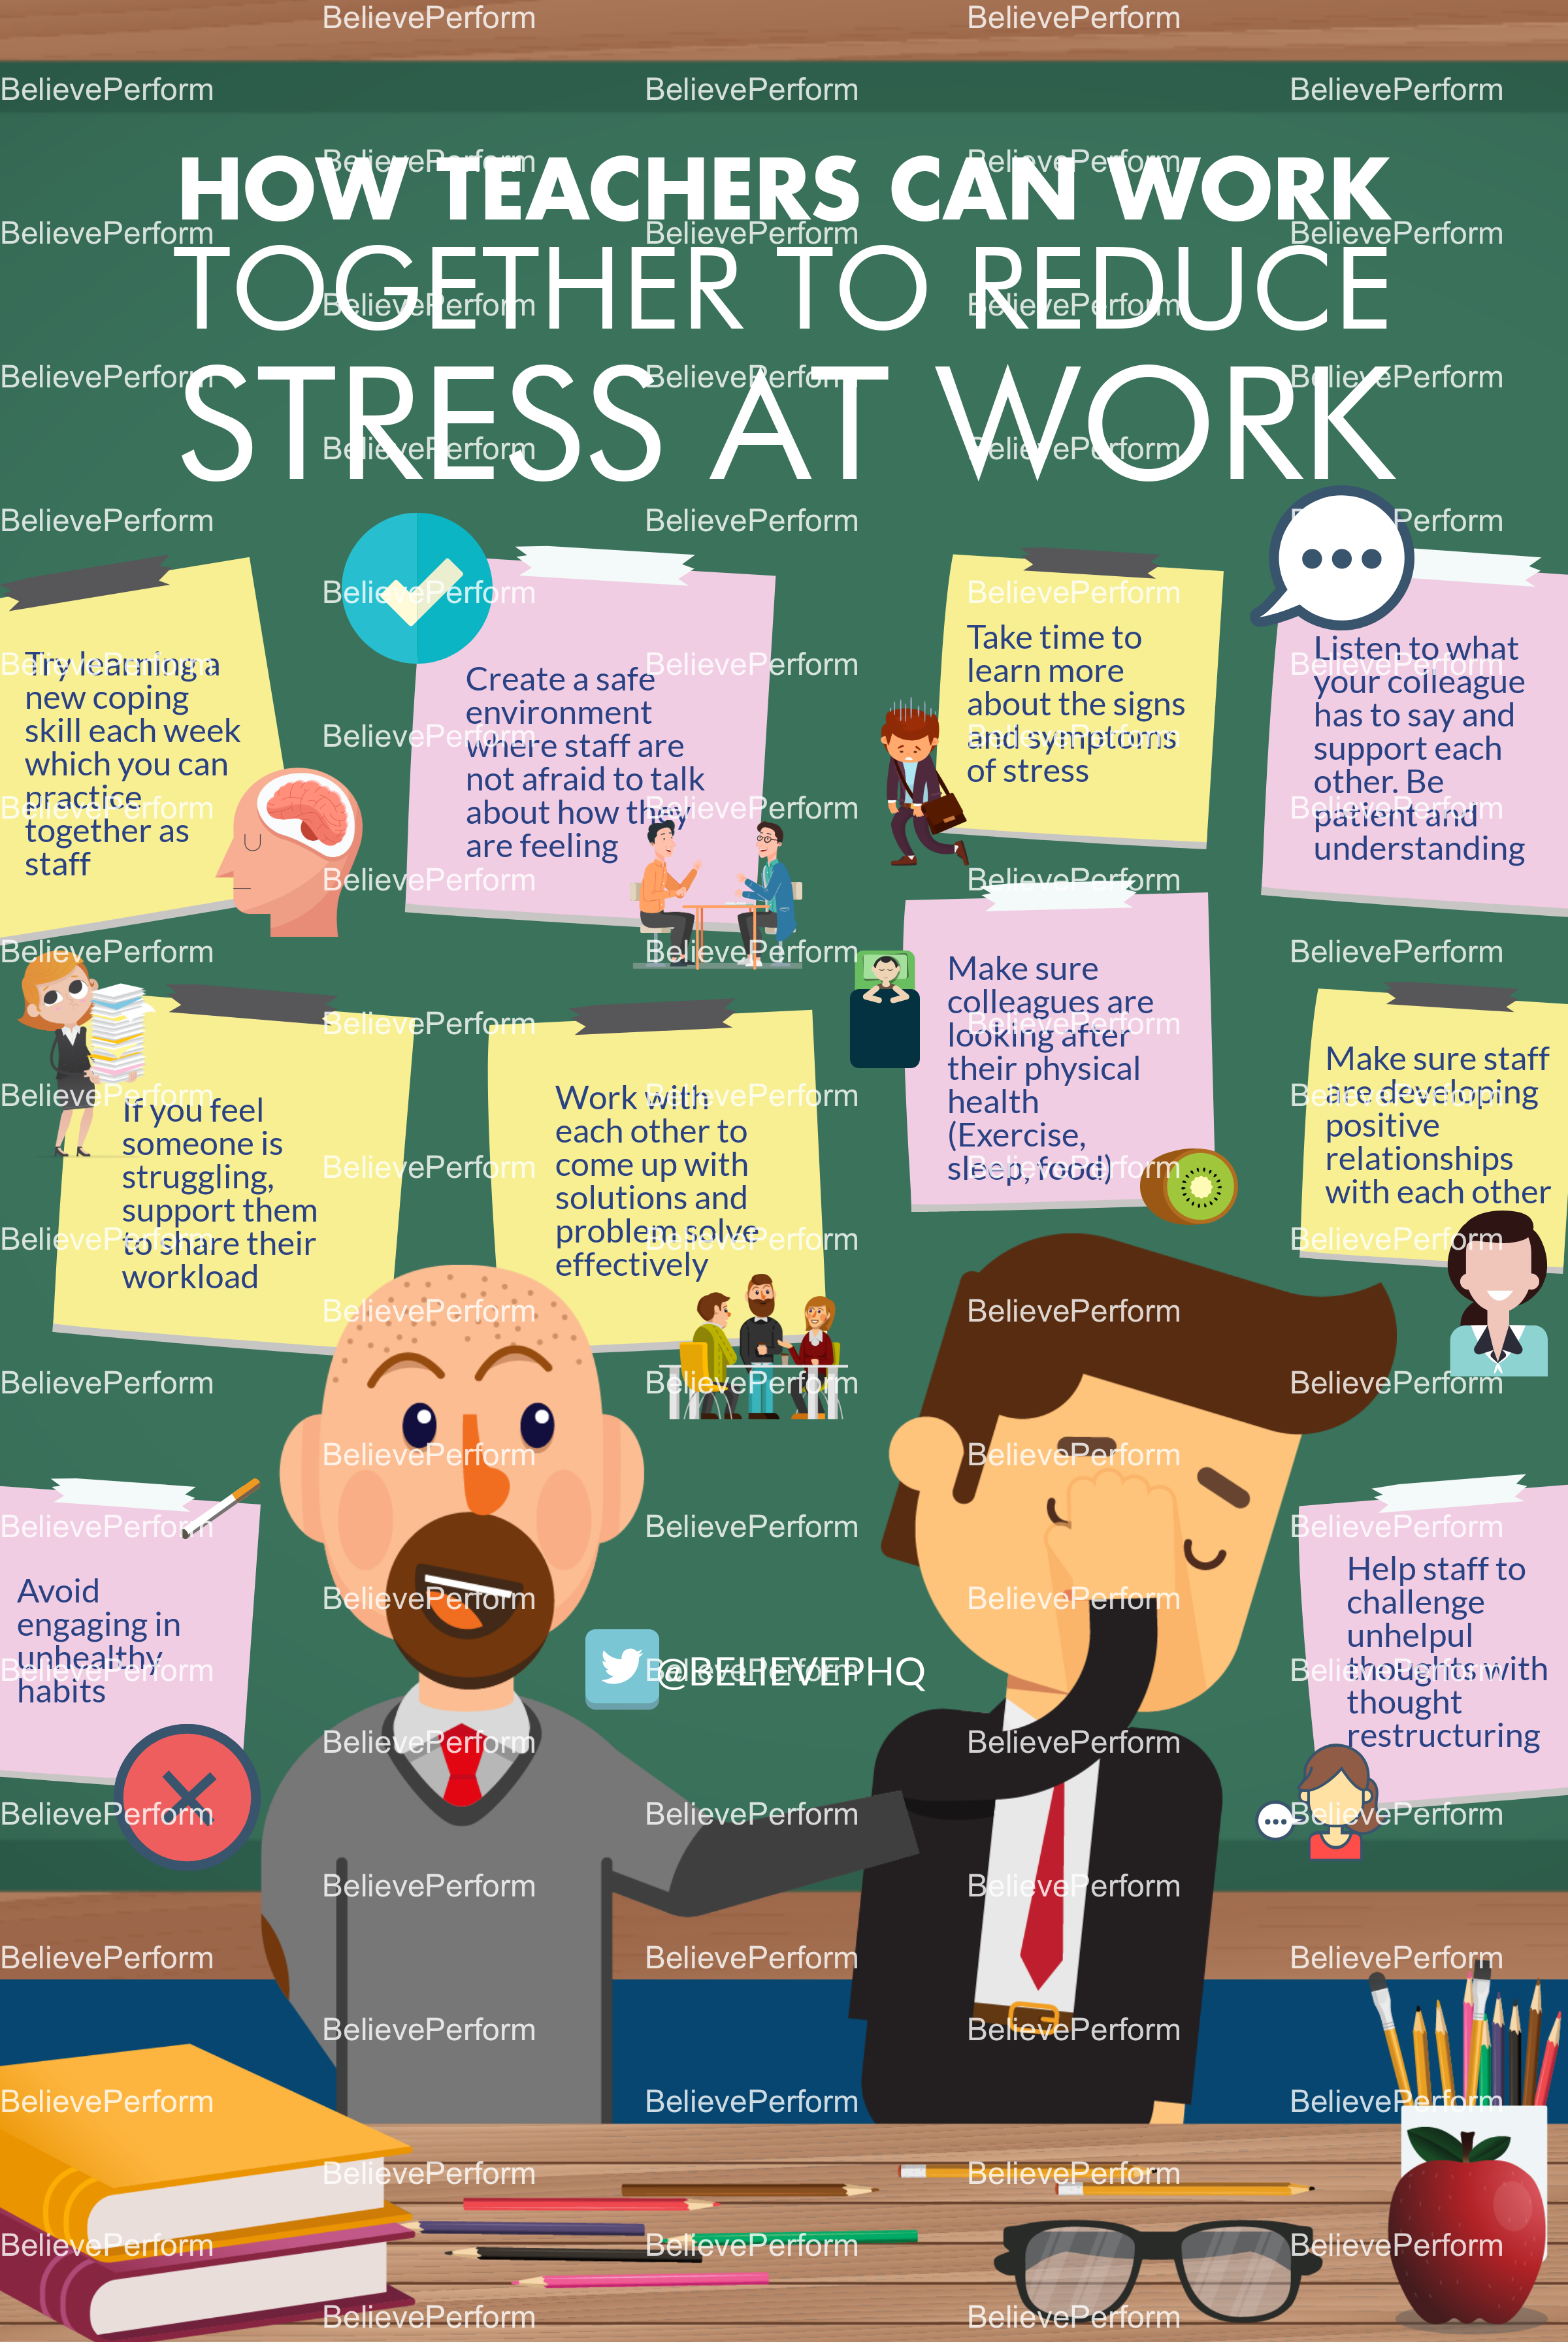 How teachers can work together to reduce stress at work